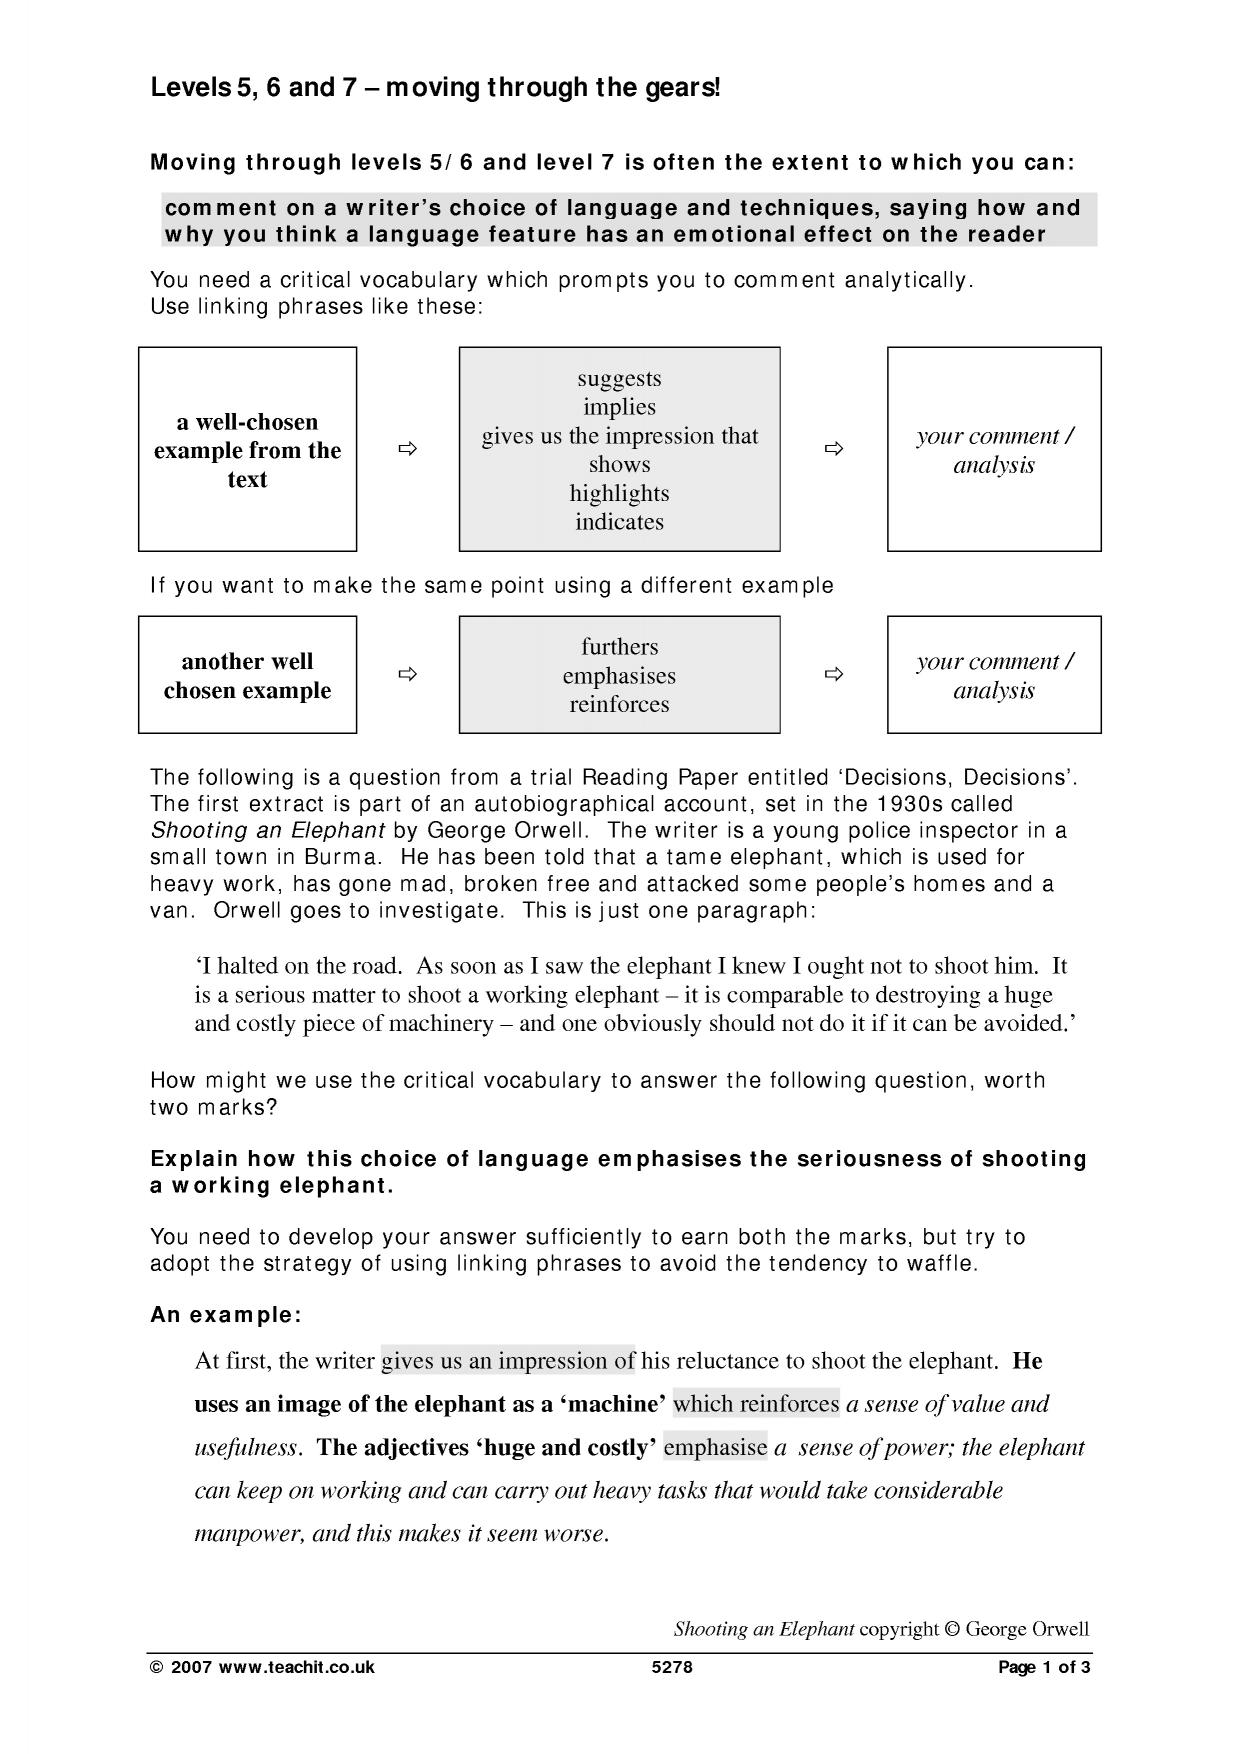 reading paper levels 5 6 and 7 moving through the gears reading skills critical reading assessment and revision home - Critical Reading Essay Example